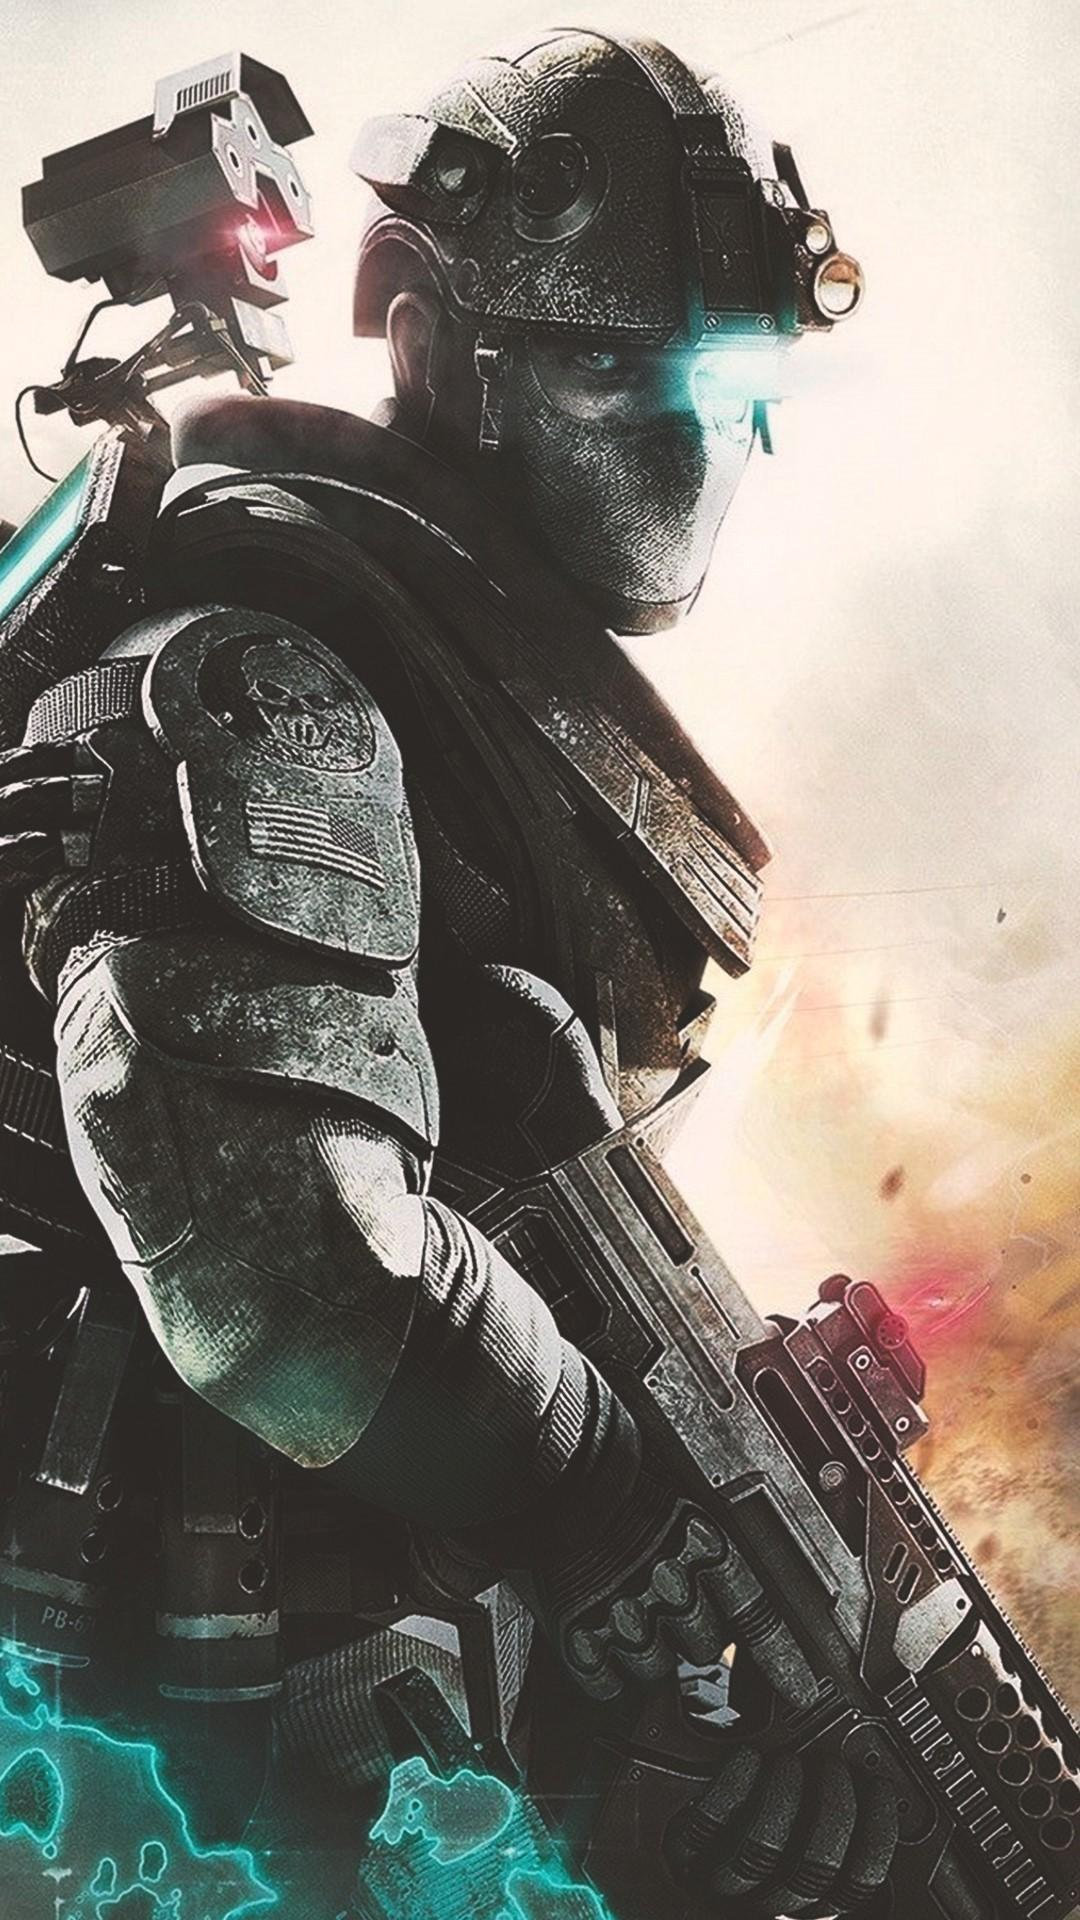 Call Of Duty Hd Wallpapers For Android Apk Download